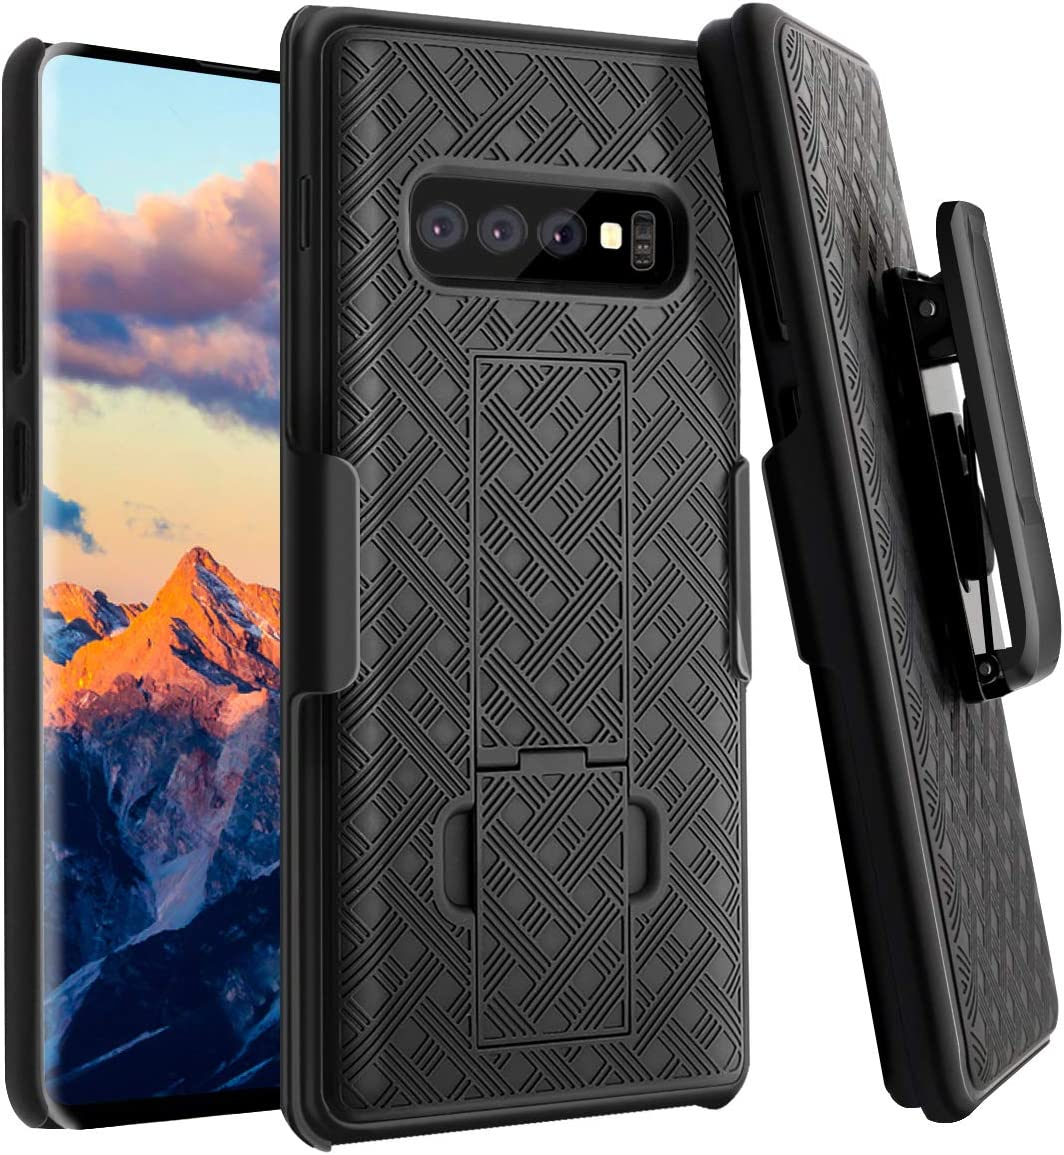 Galaxy S10 Plus Case, Fingic S10 Plus Combo Shell Holster Case Slim Fit Shell with Swivel Belt Clip Holster Bulit-in Kickstand Protective Cover for Samsung Galaxy S10 Plus 6.4 inch - Black